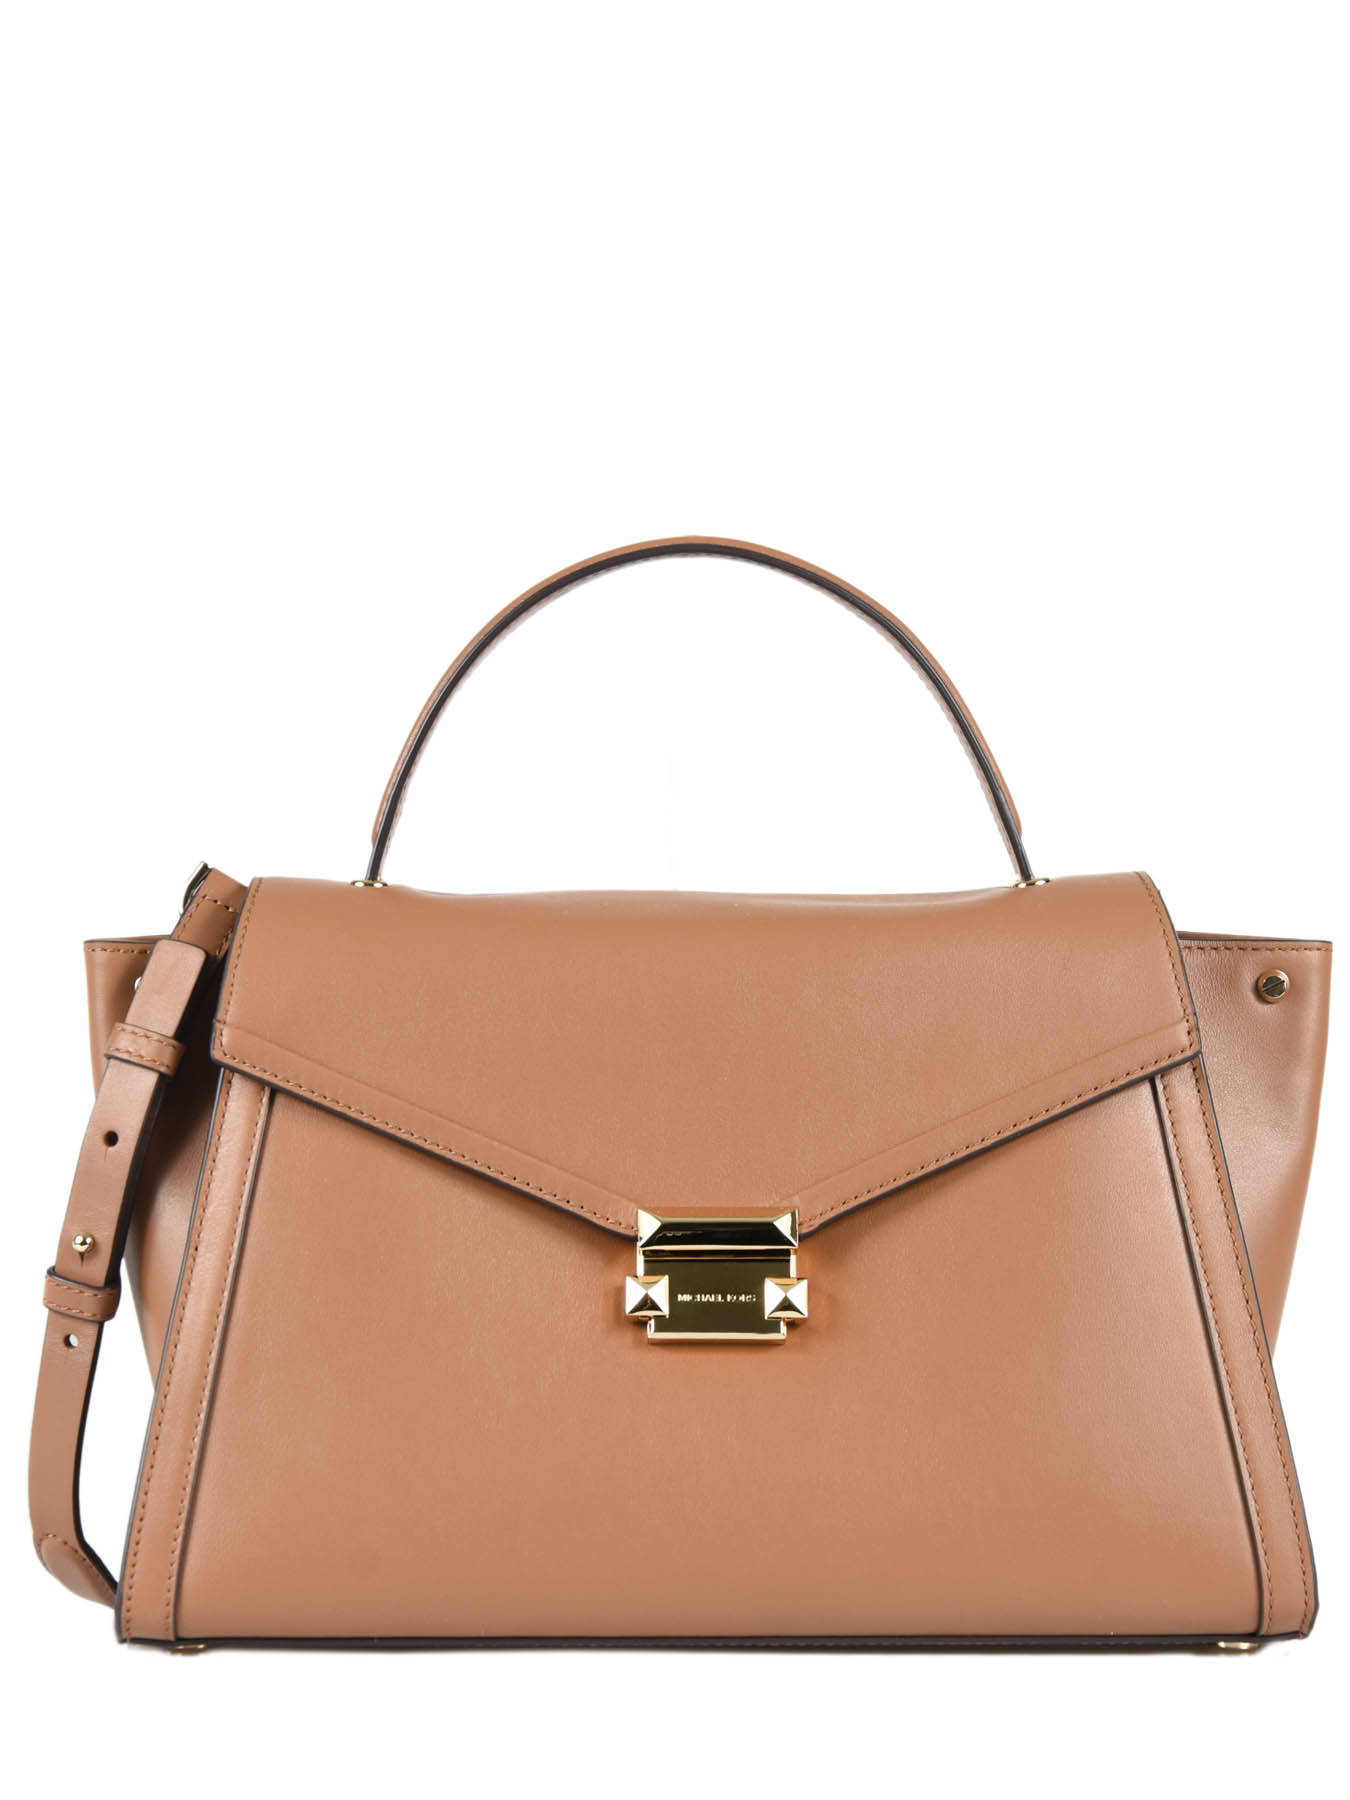 8ab62f9991d55d Large Leather Whitney Satchel Michael kors Brown m group T8GXIS3L ...